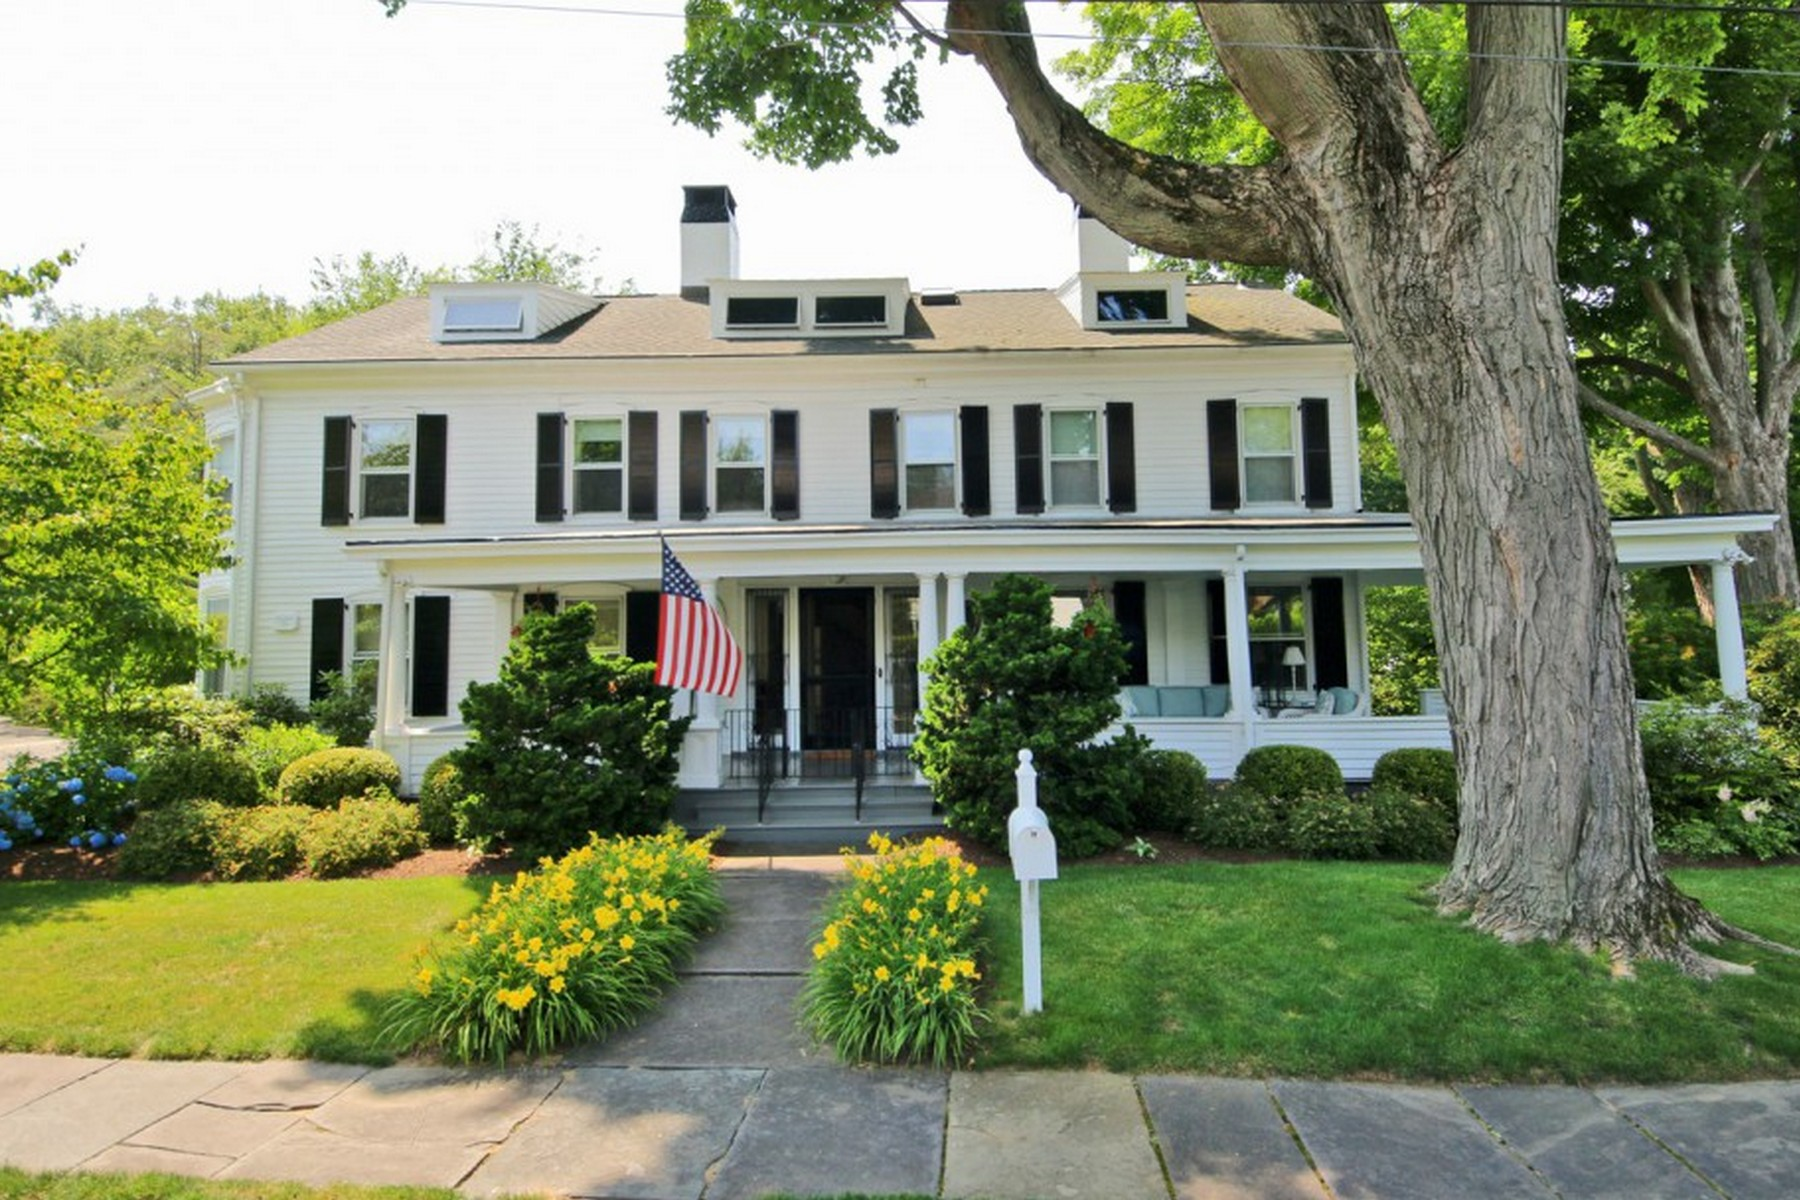 Single Family Home for Sale at PAUL SHEFFIELD HOUSE - SOUTHPORT VILLAGE 72 Willow Street Southport, Fairfield, Connecticut, 06890 United States